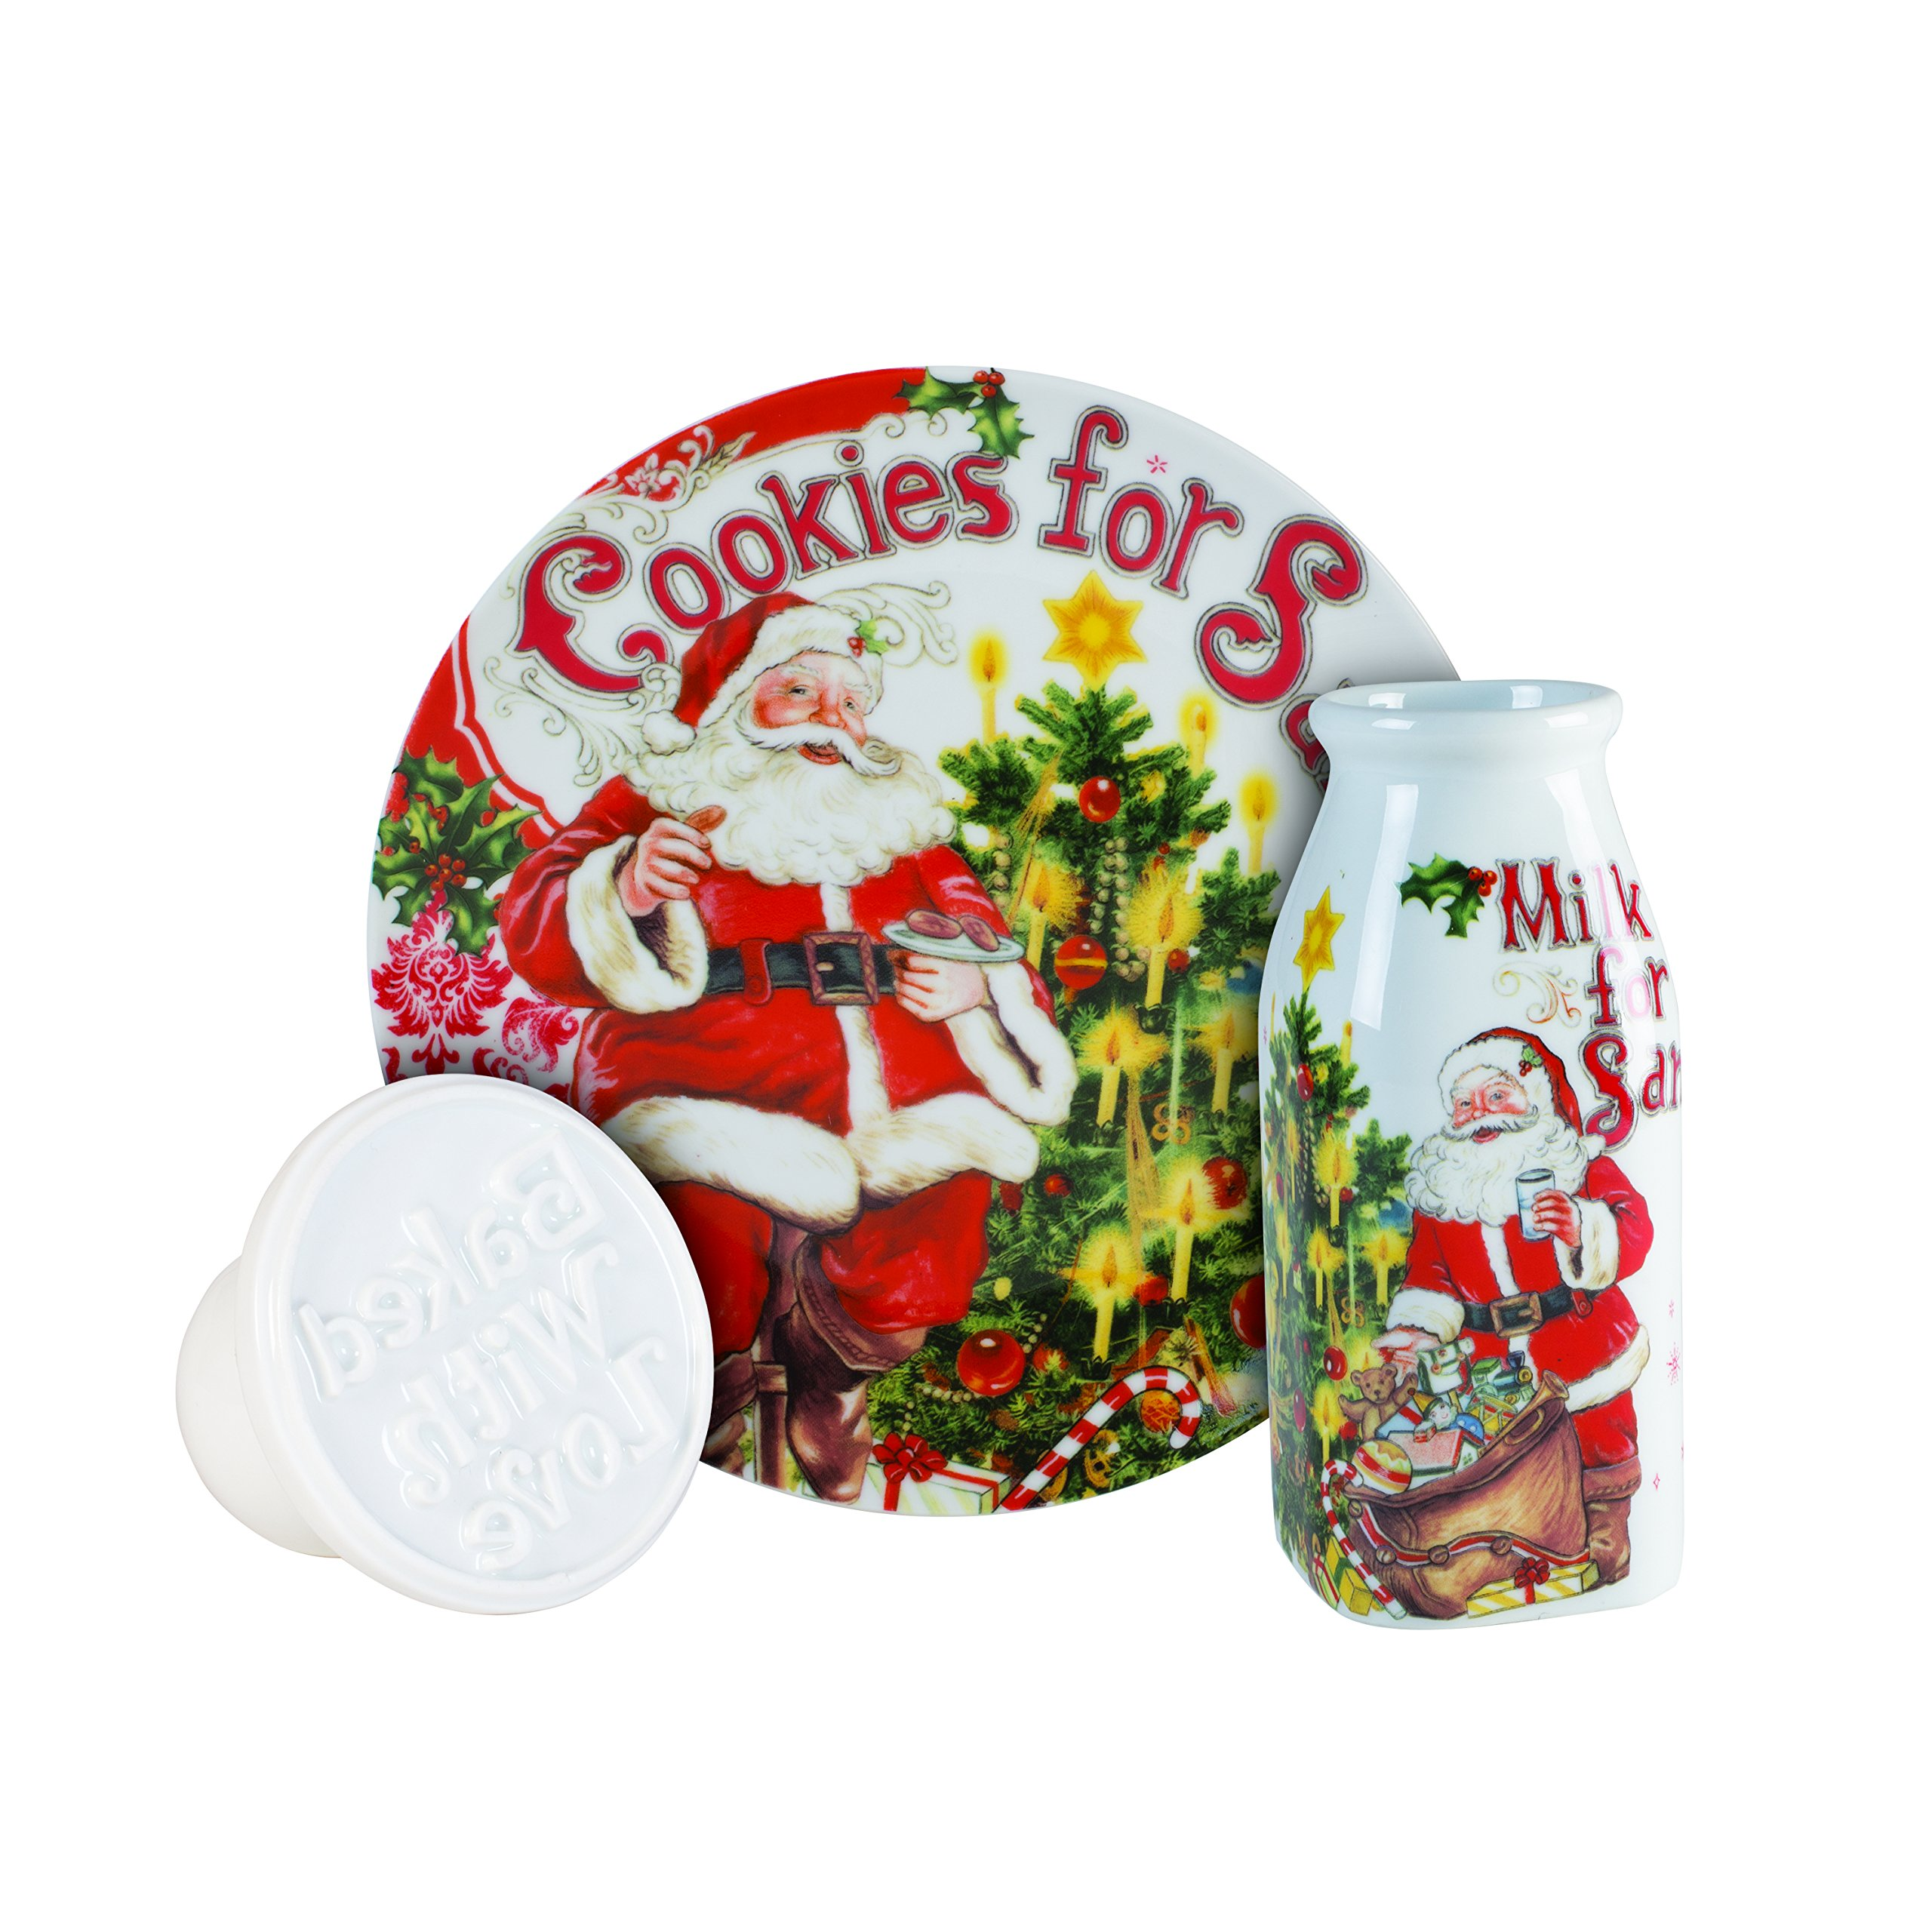 Fitz and Floyd 3 Piece Old World Christmas Milk and Cookies Press Set, White/Red/Green by Fitz and Floyd (Image #1)